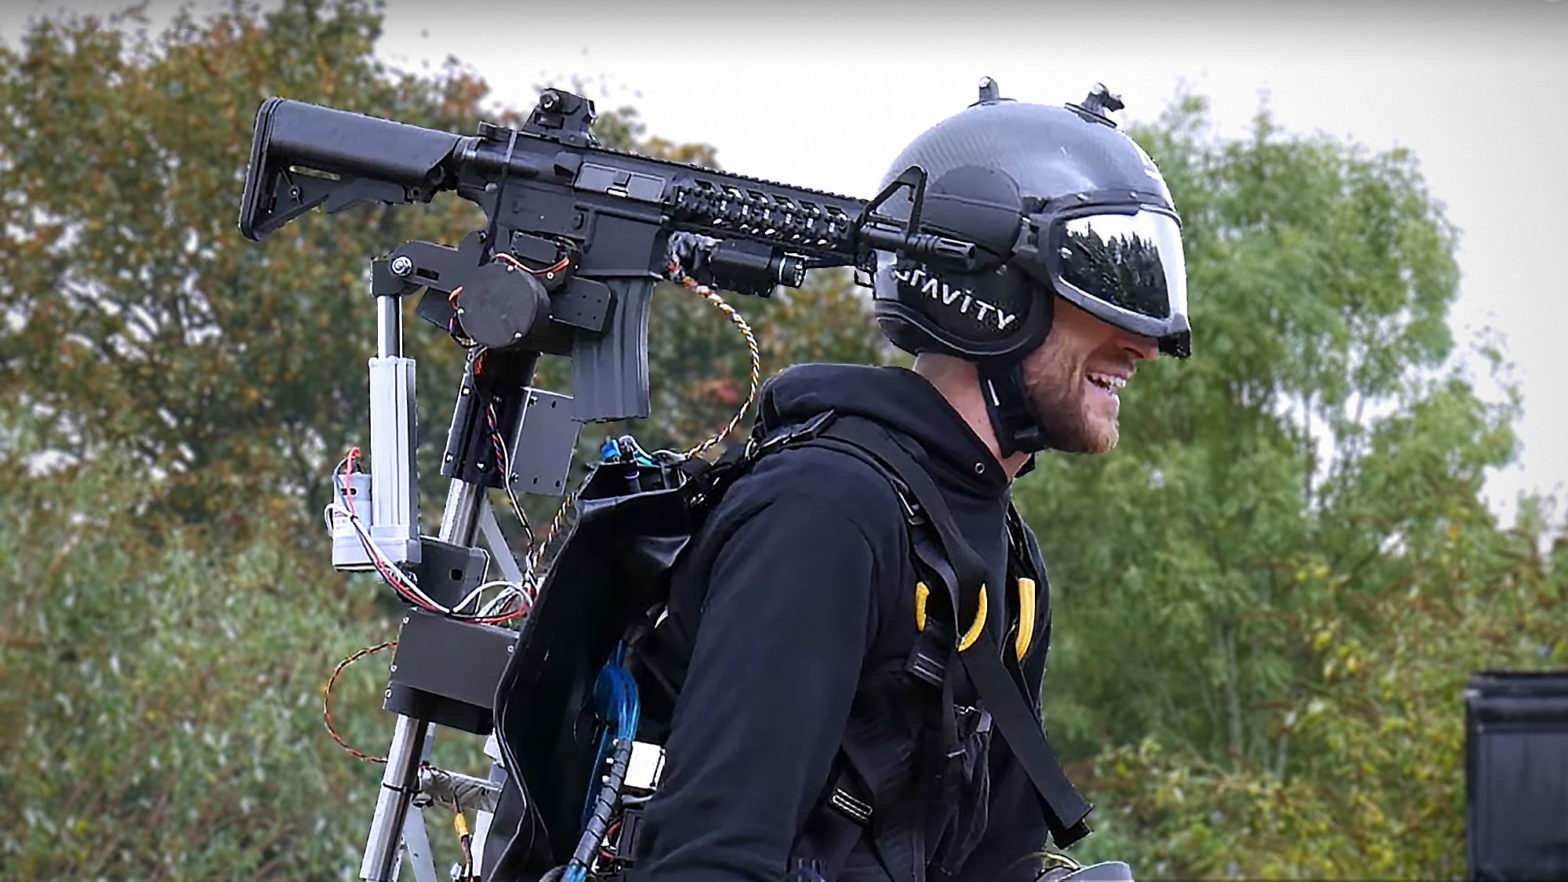 Jet Suit with Head Tracking Airsoft Gun